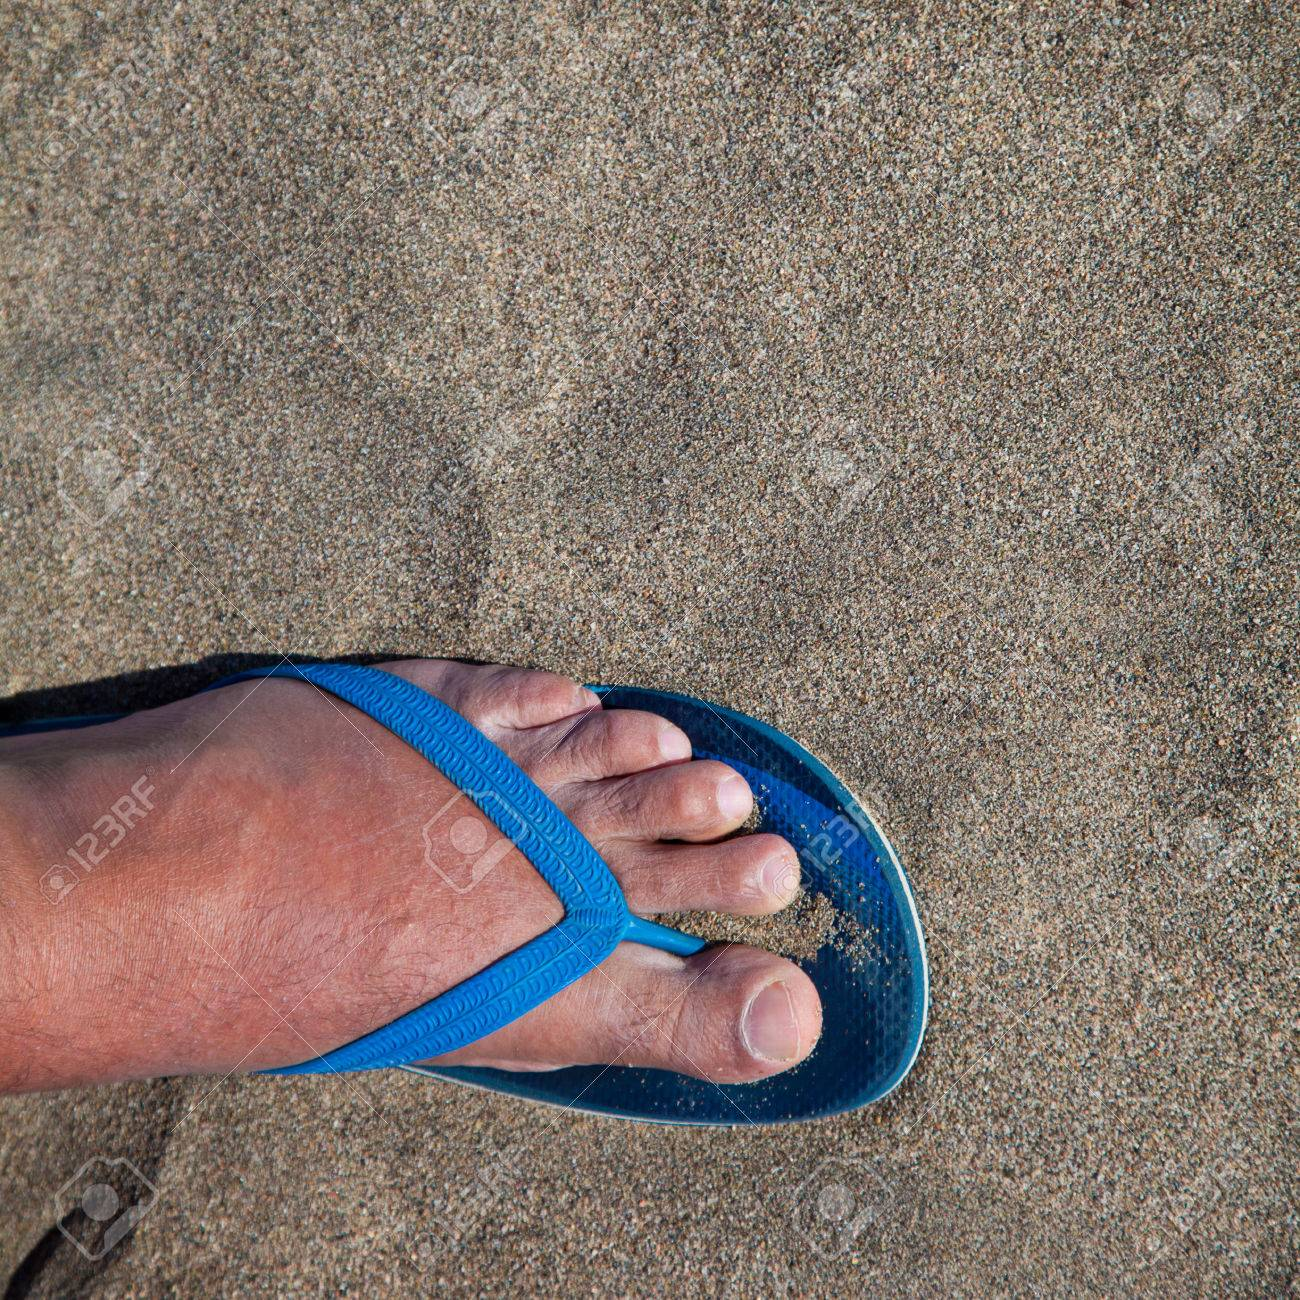 71b5aff5cf360 Feet of a man in thong sandals in beach sand Stock Photo - 59407338